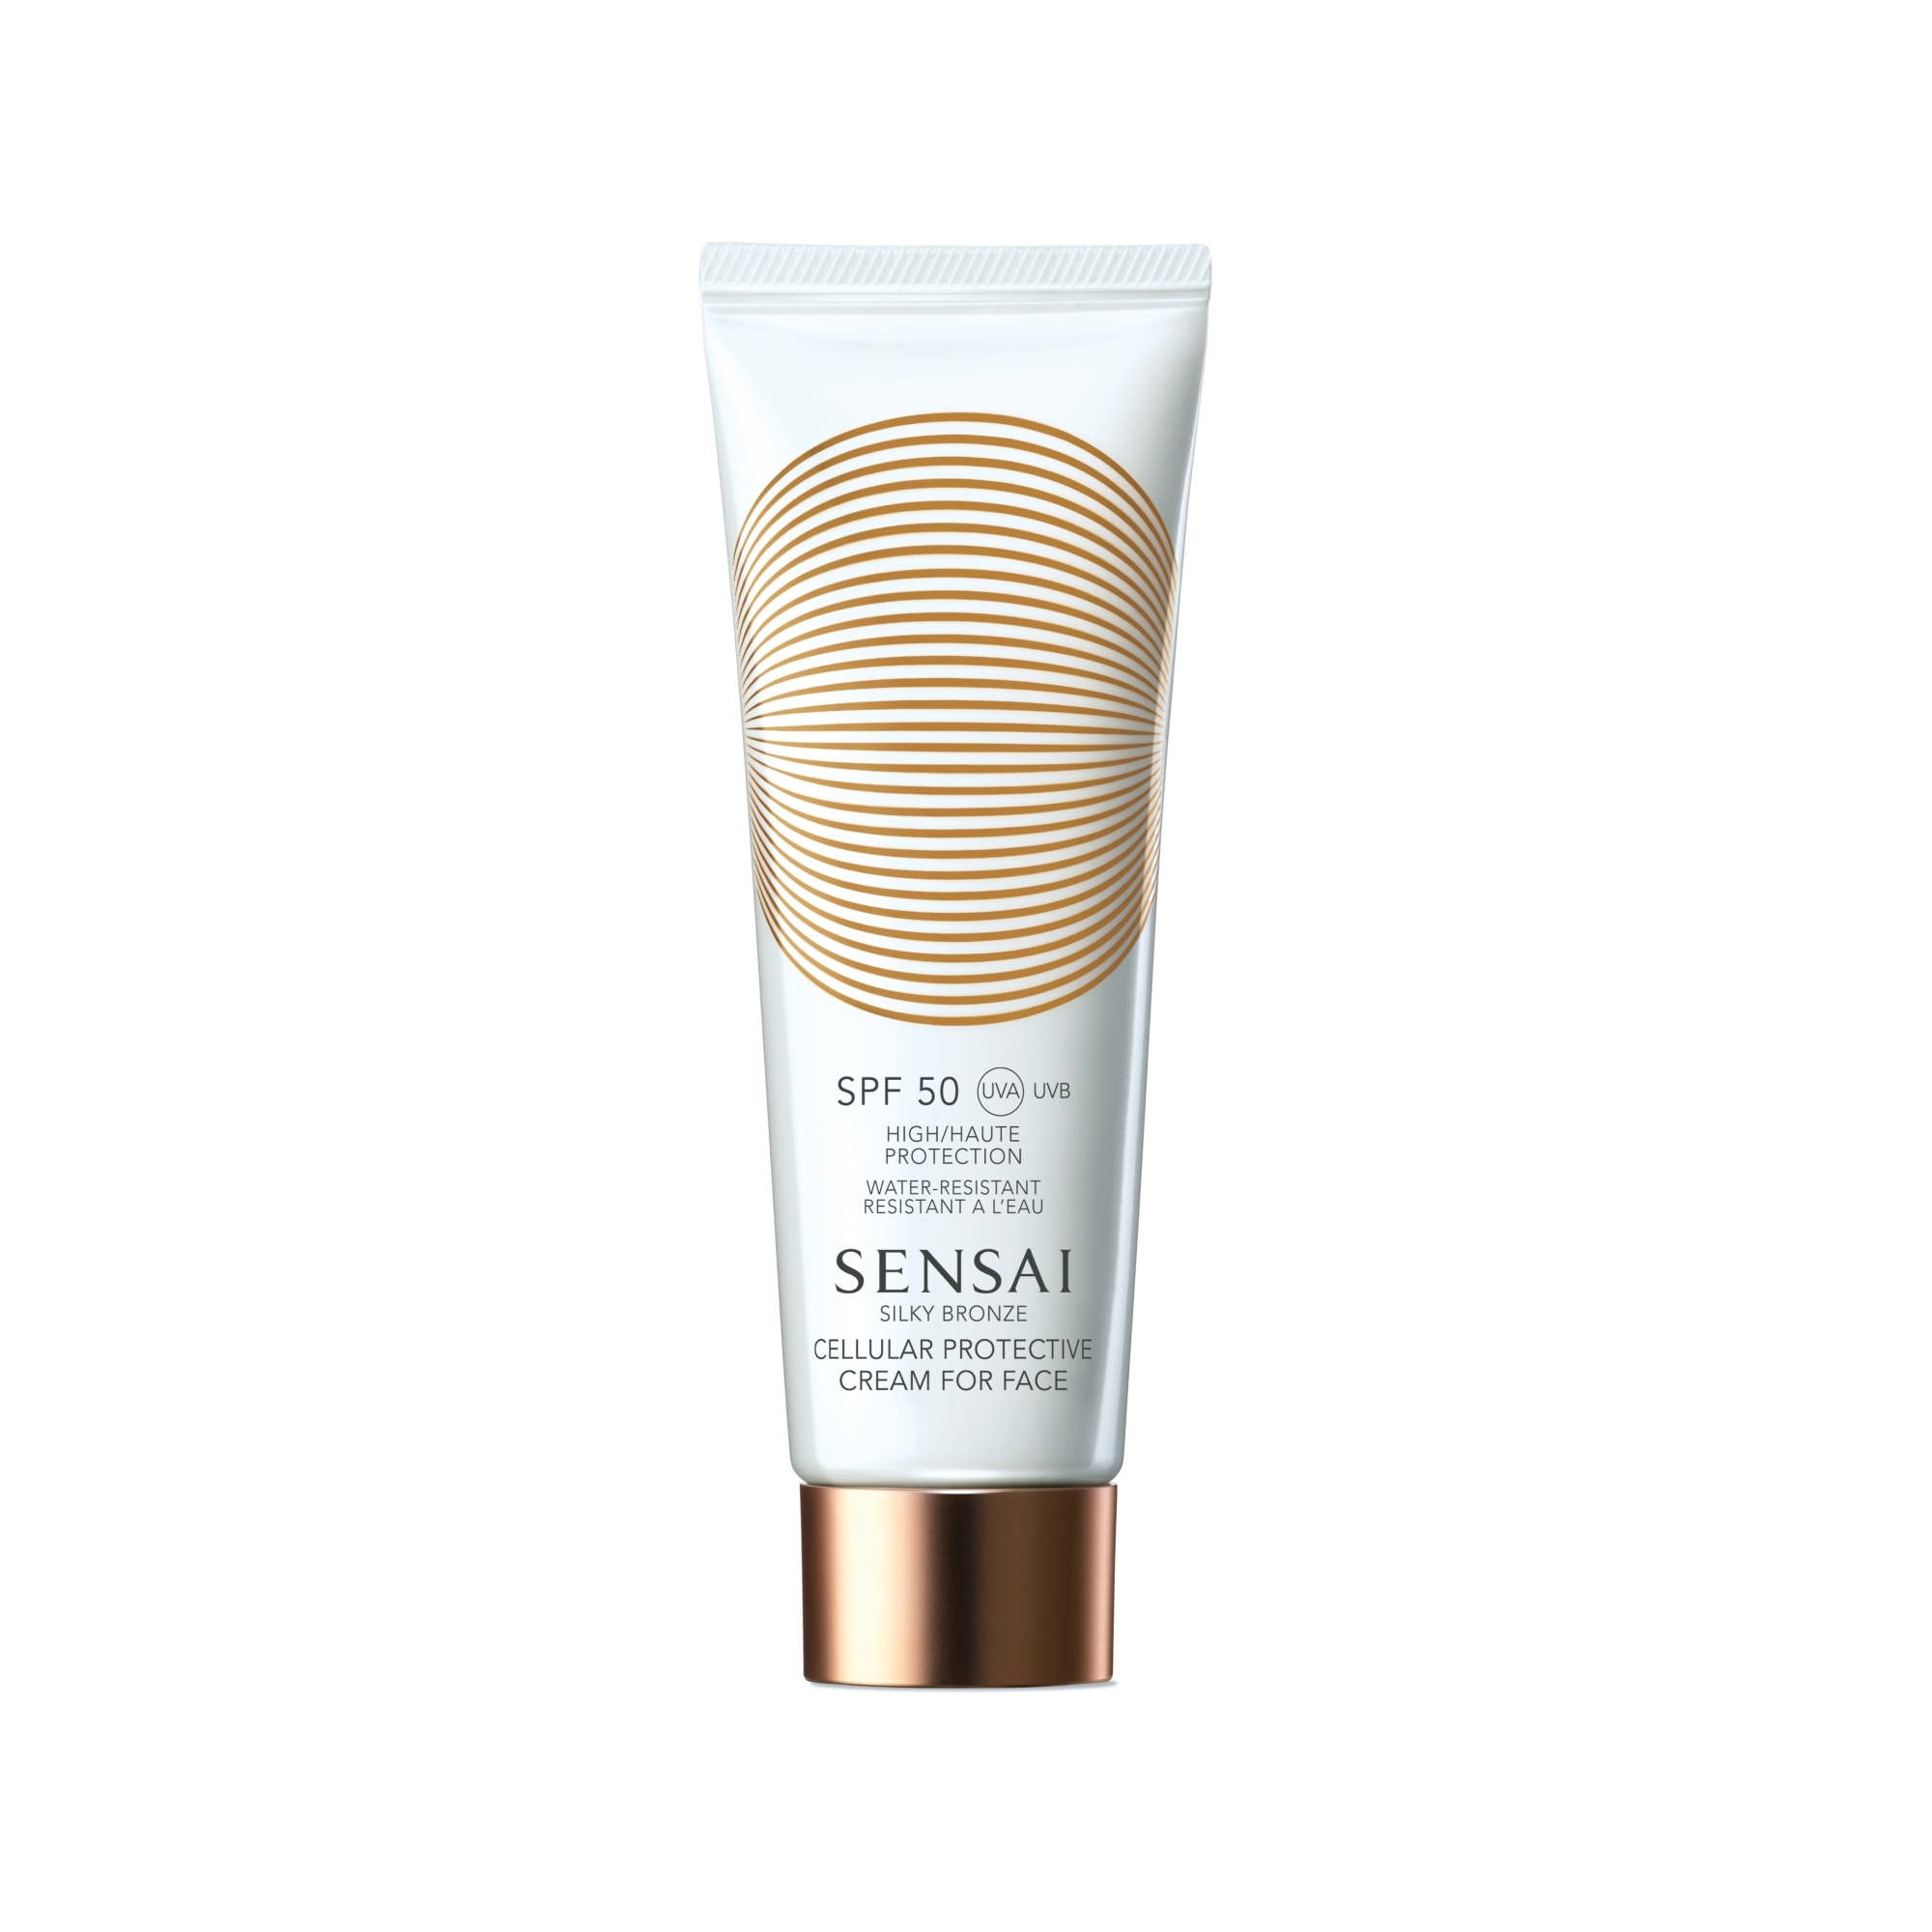 Silky Bronze Protective Cream for Face SPF 50